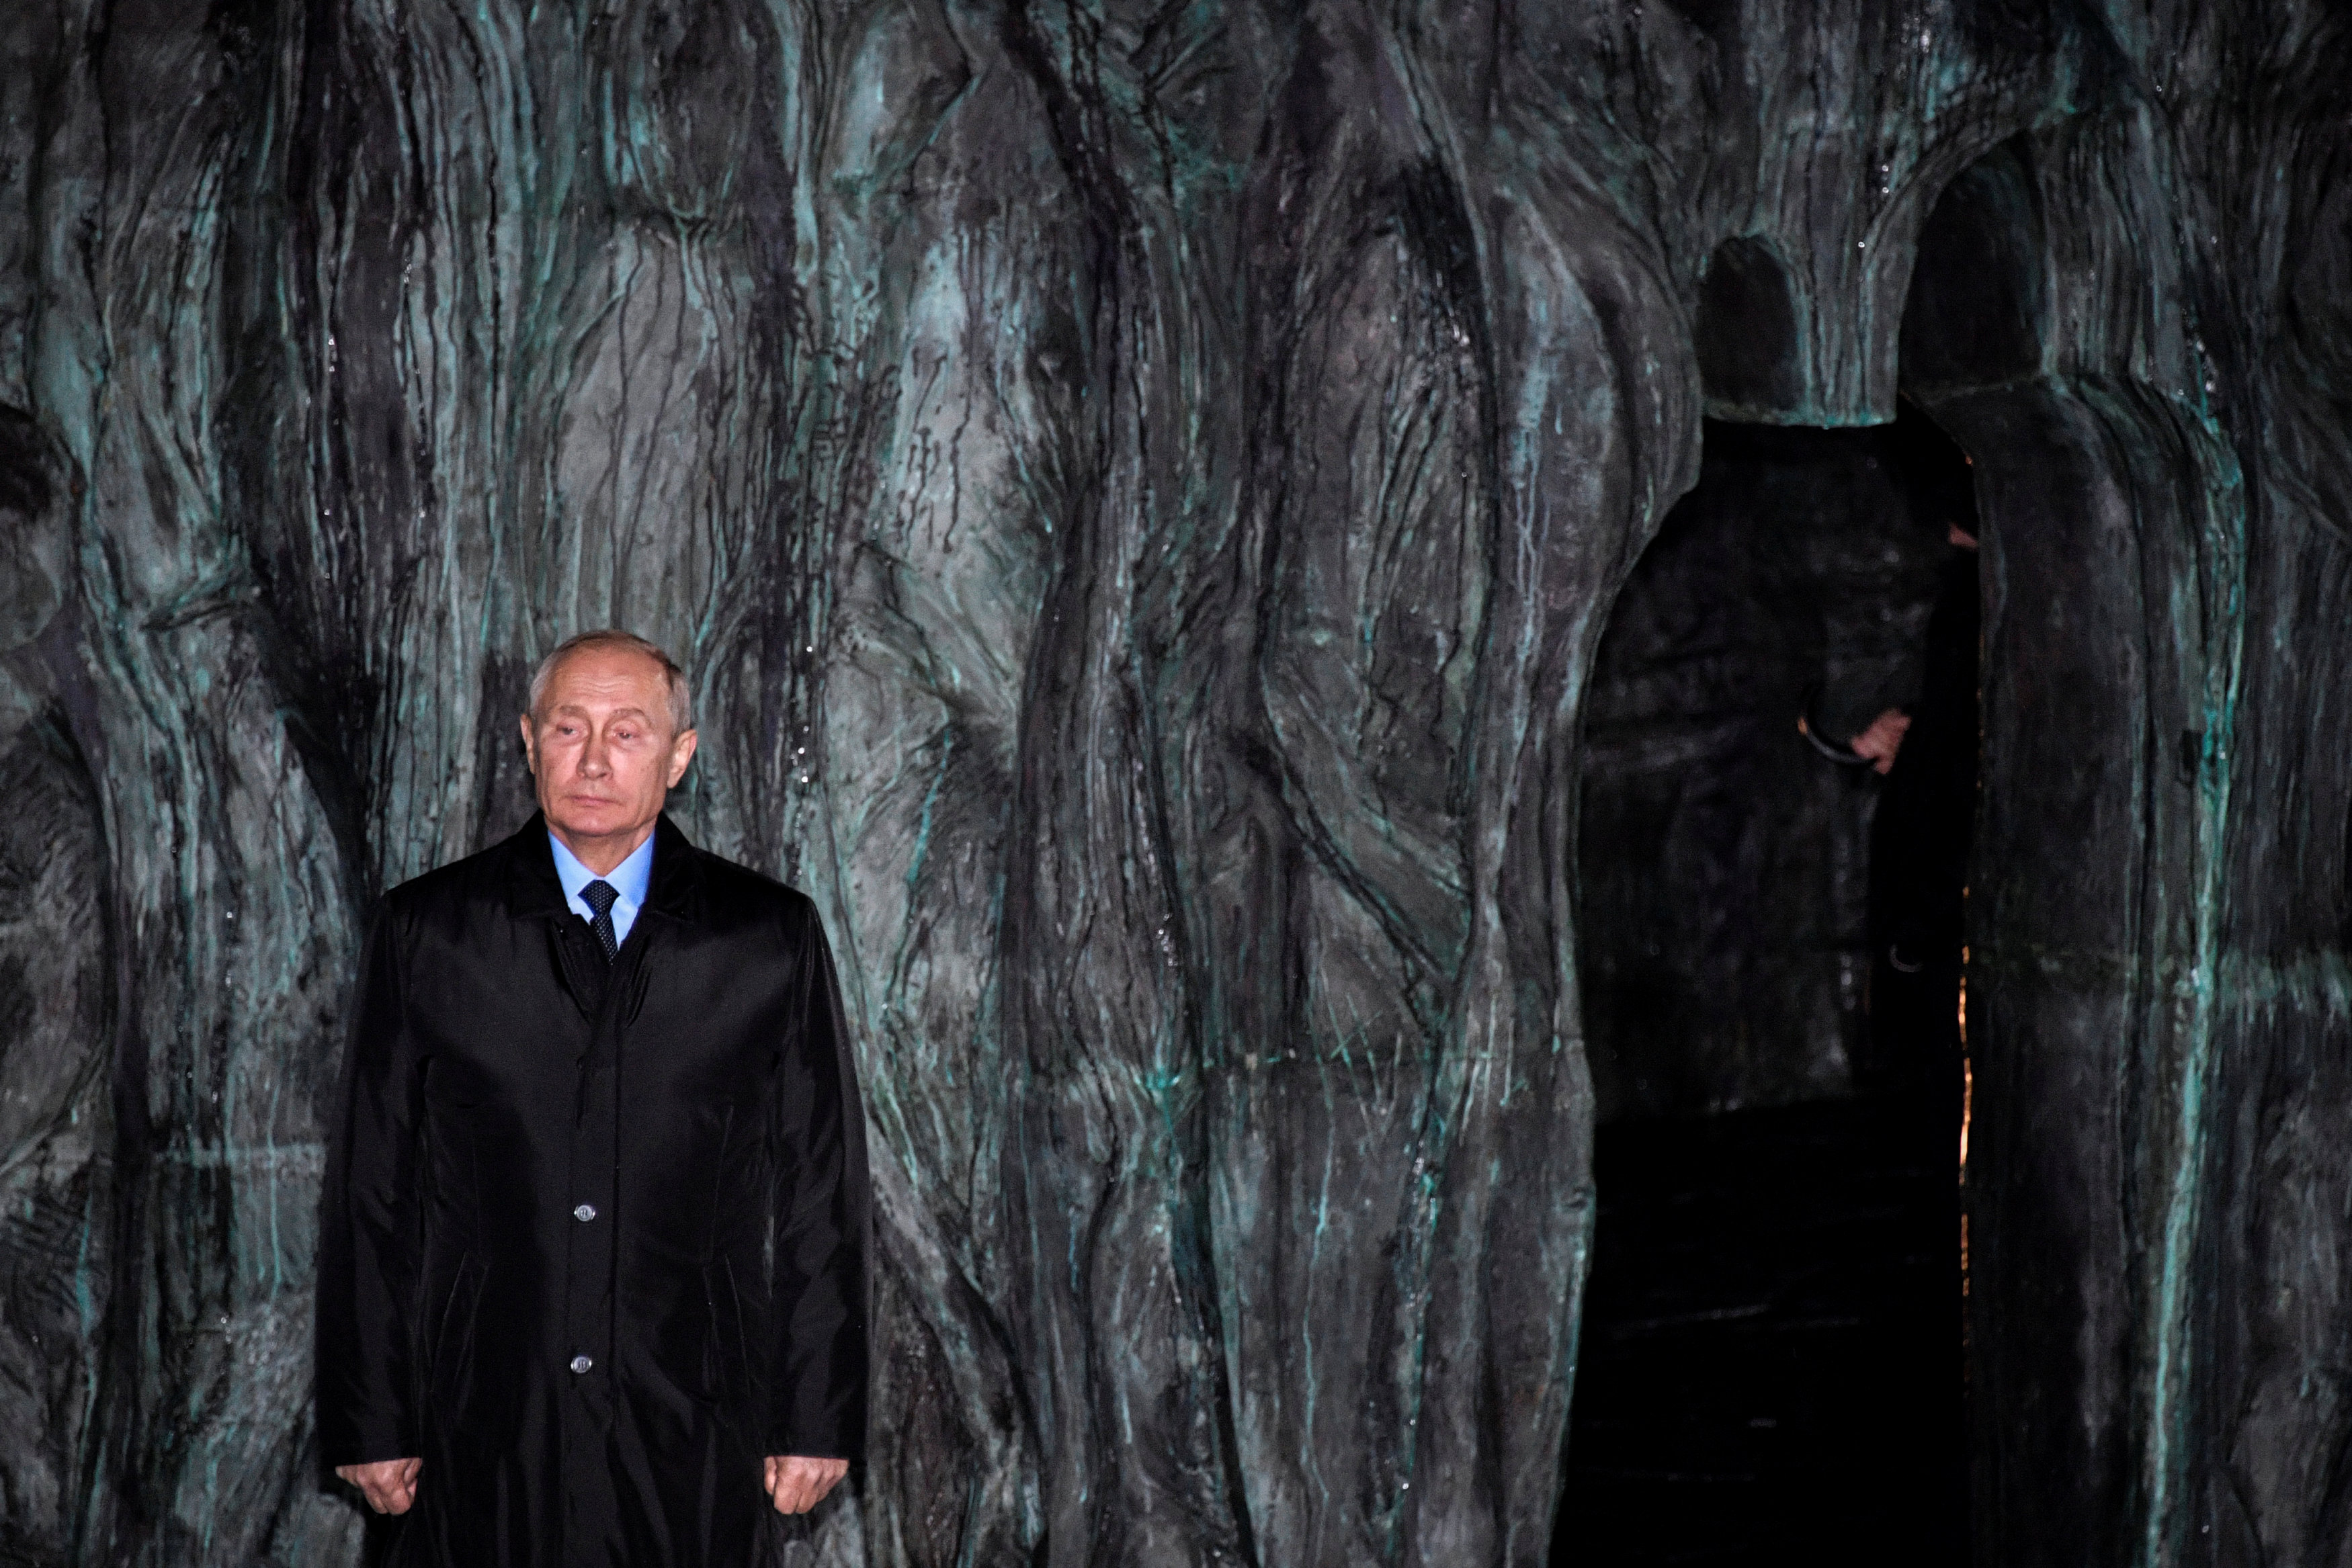 """Russian President Vladimir Putin attends a ceremony unveiling the country's first national memorial to victims of Soviet-era political repressions called """"The Wall of Grief"""" in Moscow, Russia October 30, 2017."""